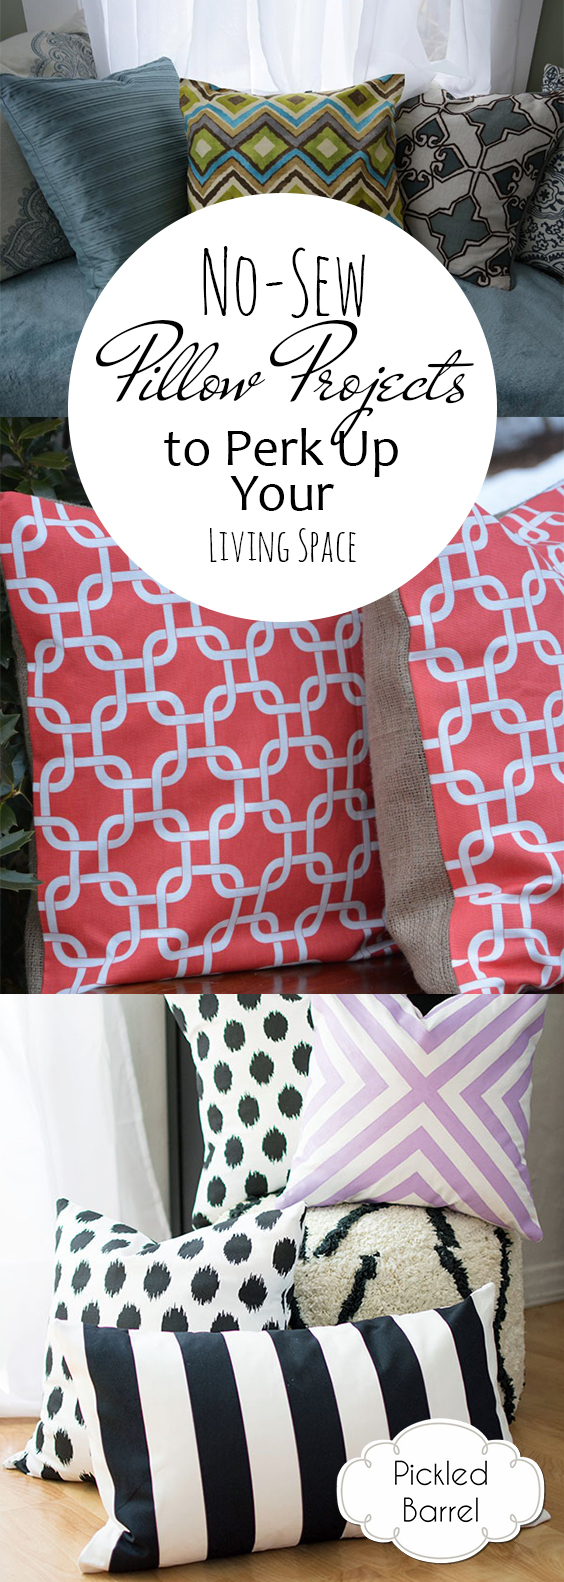 No-Sew Pillow Projects to Perk Up Your Living Space  No Sew Pillow Projects, No Sew Projects, Pillow Projects, DIY Pillow Projects, DIY Home, DIY Home Decor, DIY Home Decor Hacks, Sewing Projects, Fast Sewing Projects